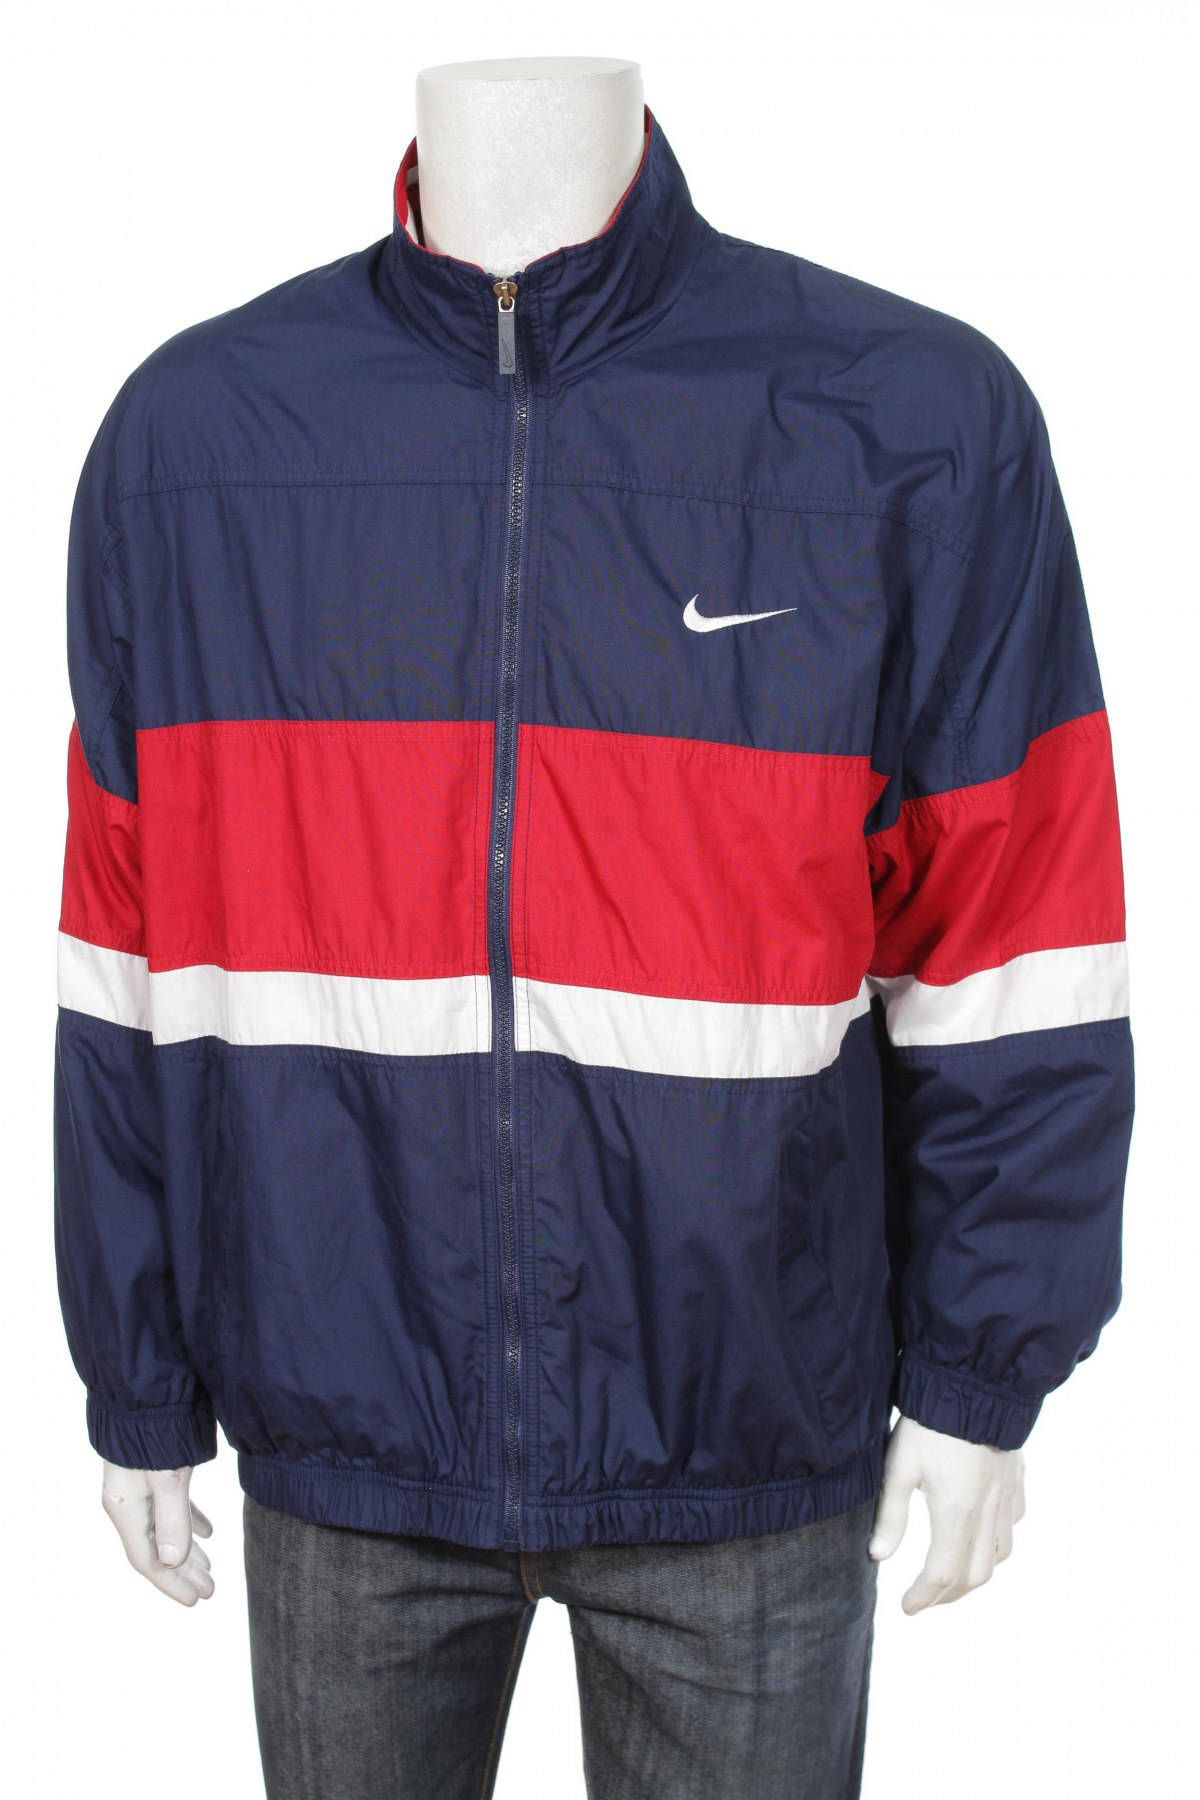 1362ad1eb White Windbreaker, Nike Windbreaker Jacket, Nike Jacket, Vintage Nike, Red  And White